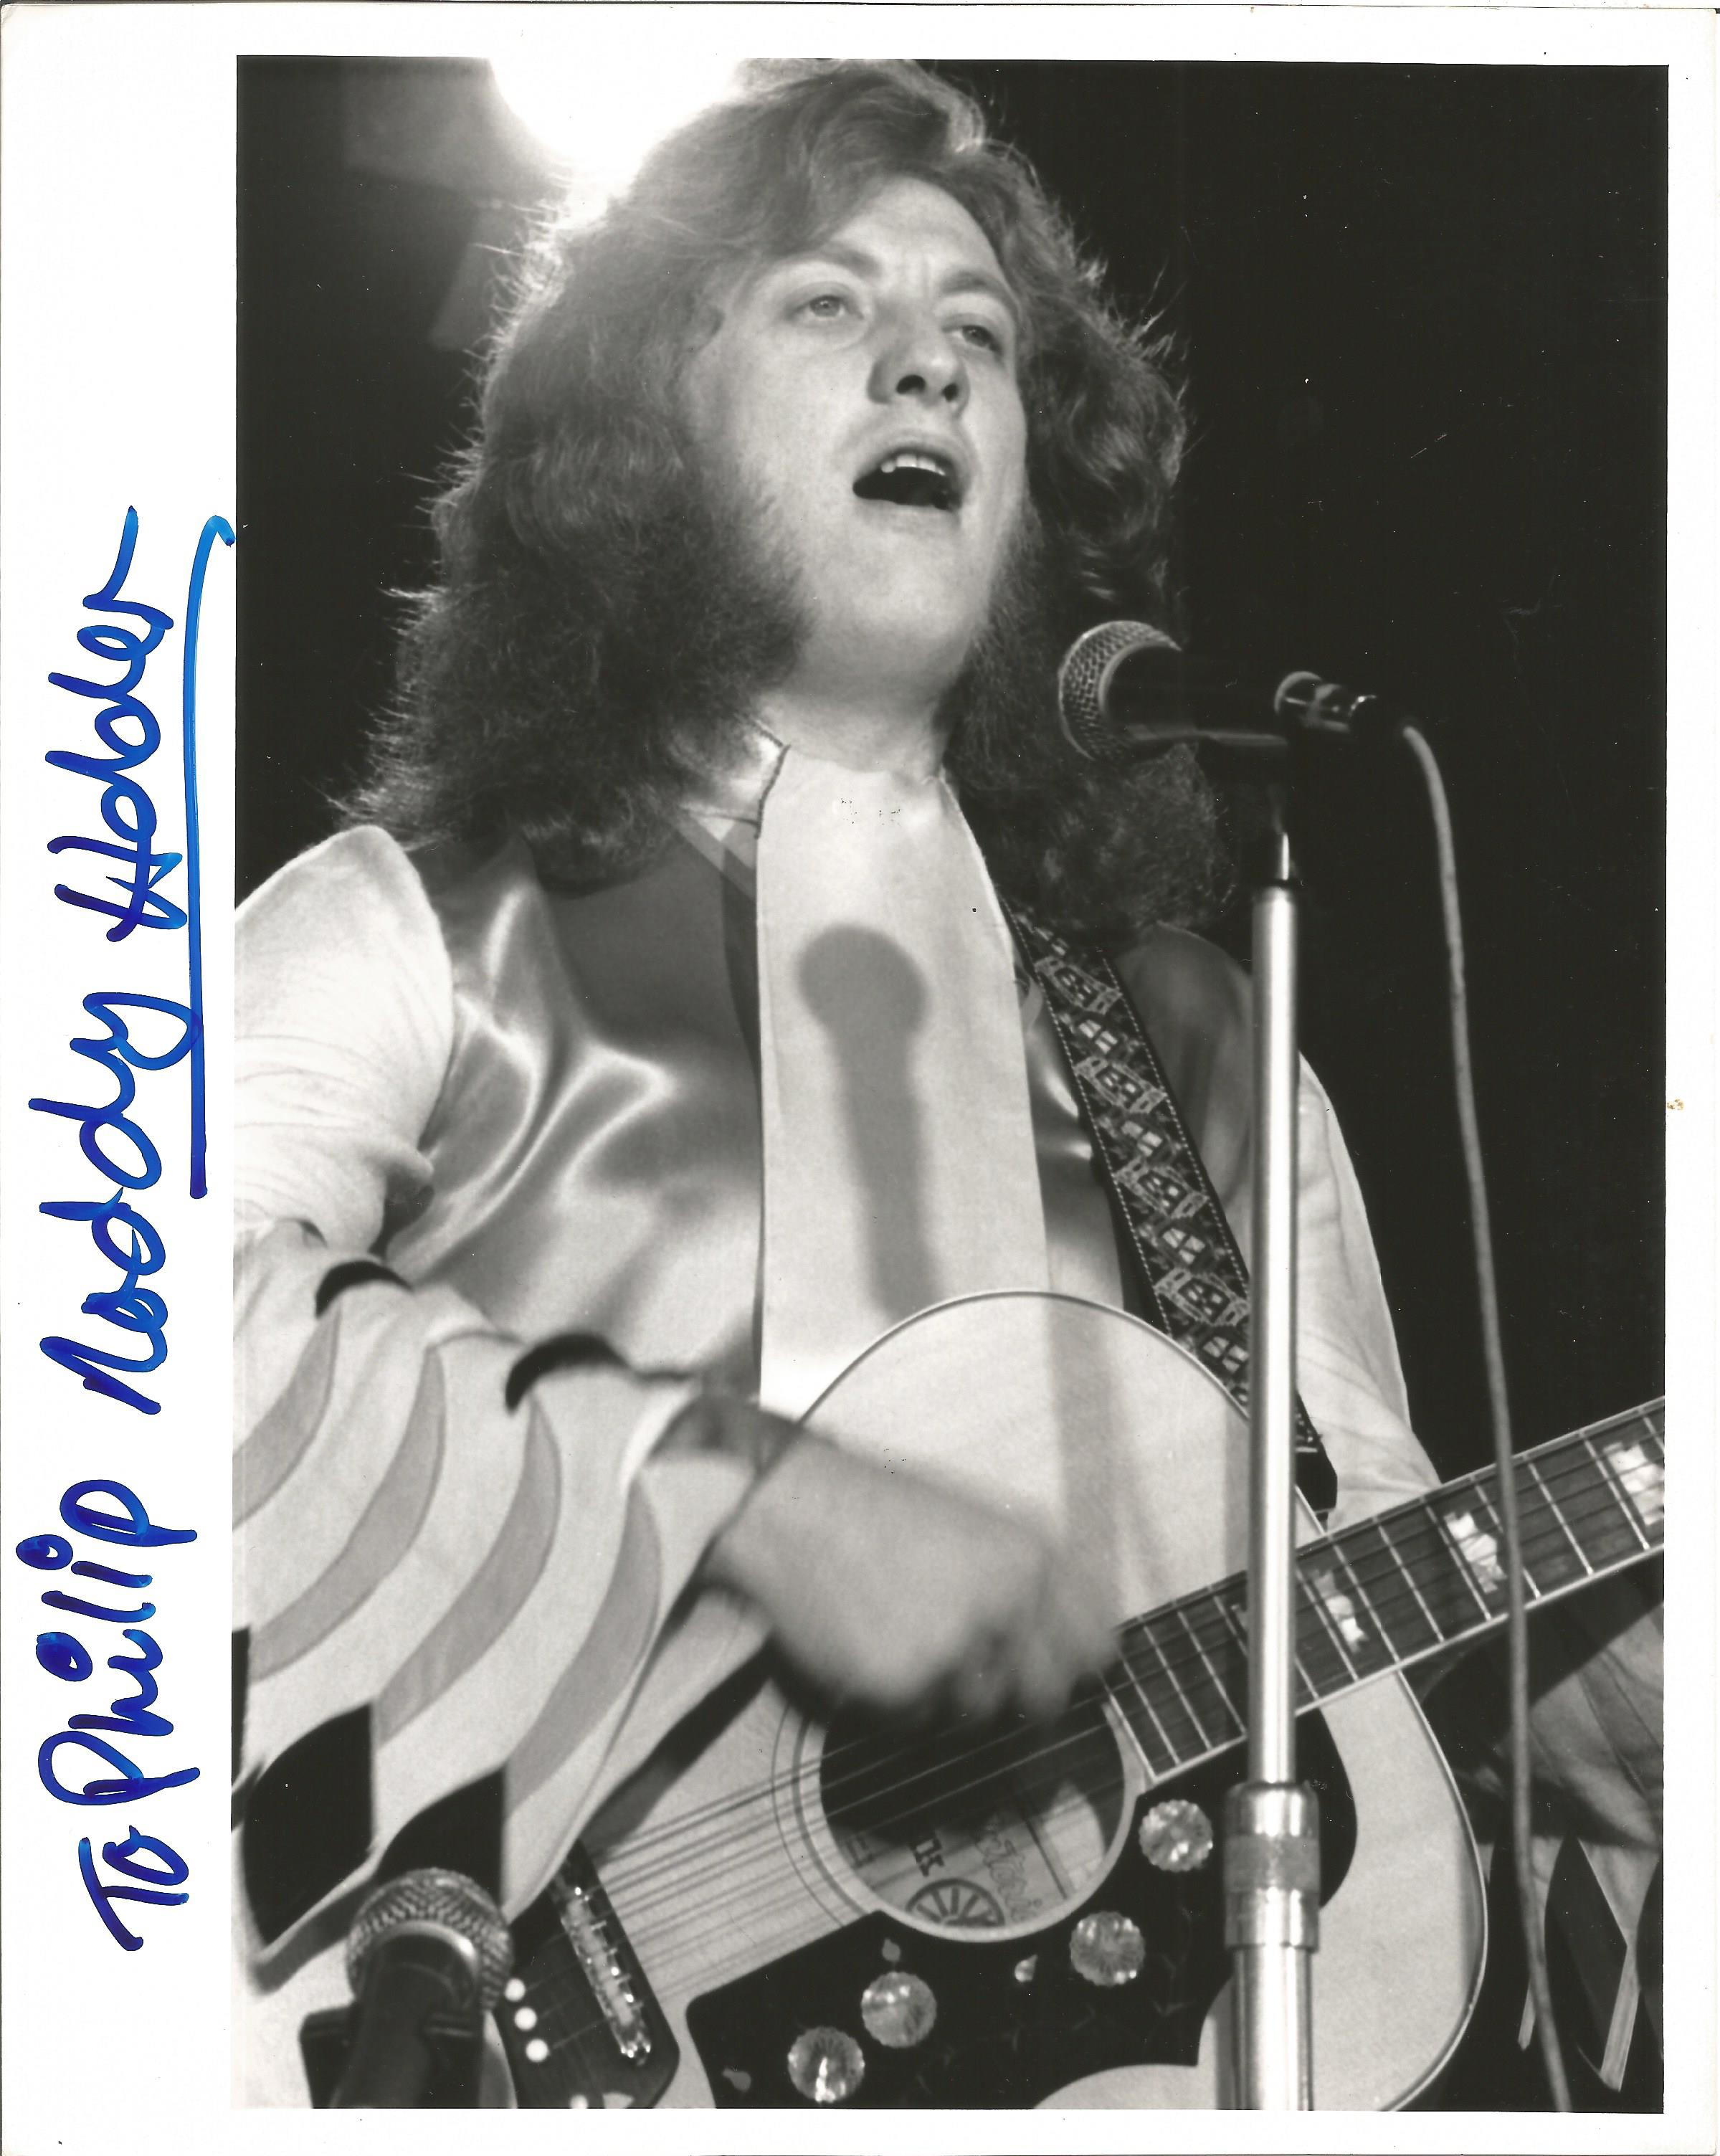 Musician Noddy Holder signed 10x8 black and white image, dedicated to Philip. Neville John Noddy